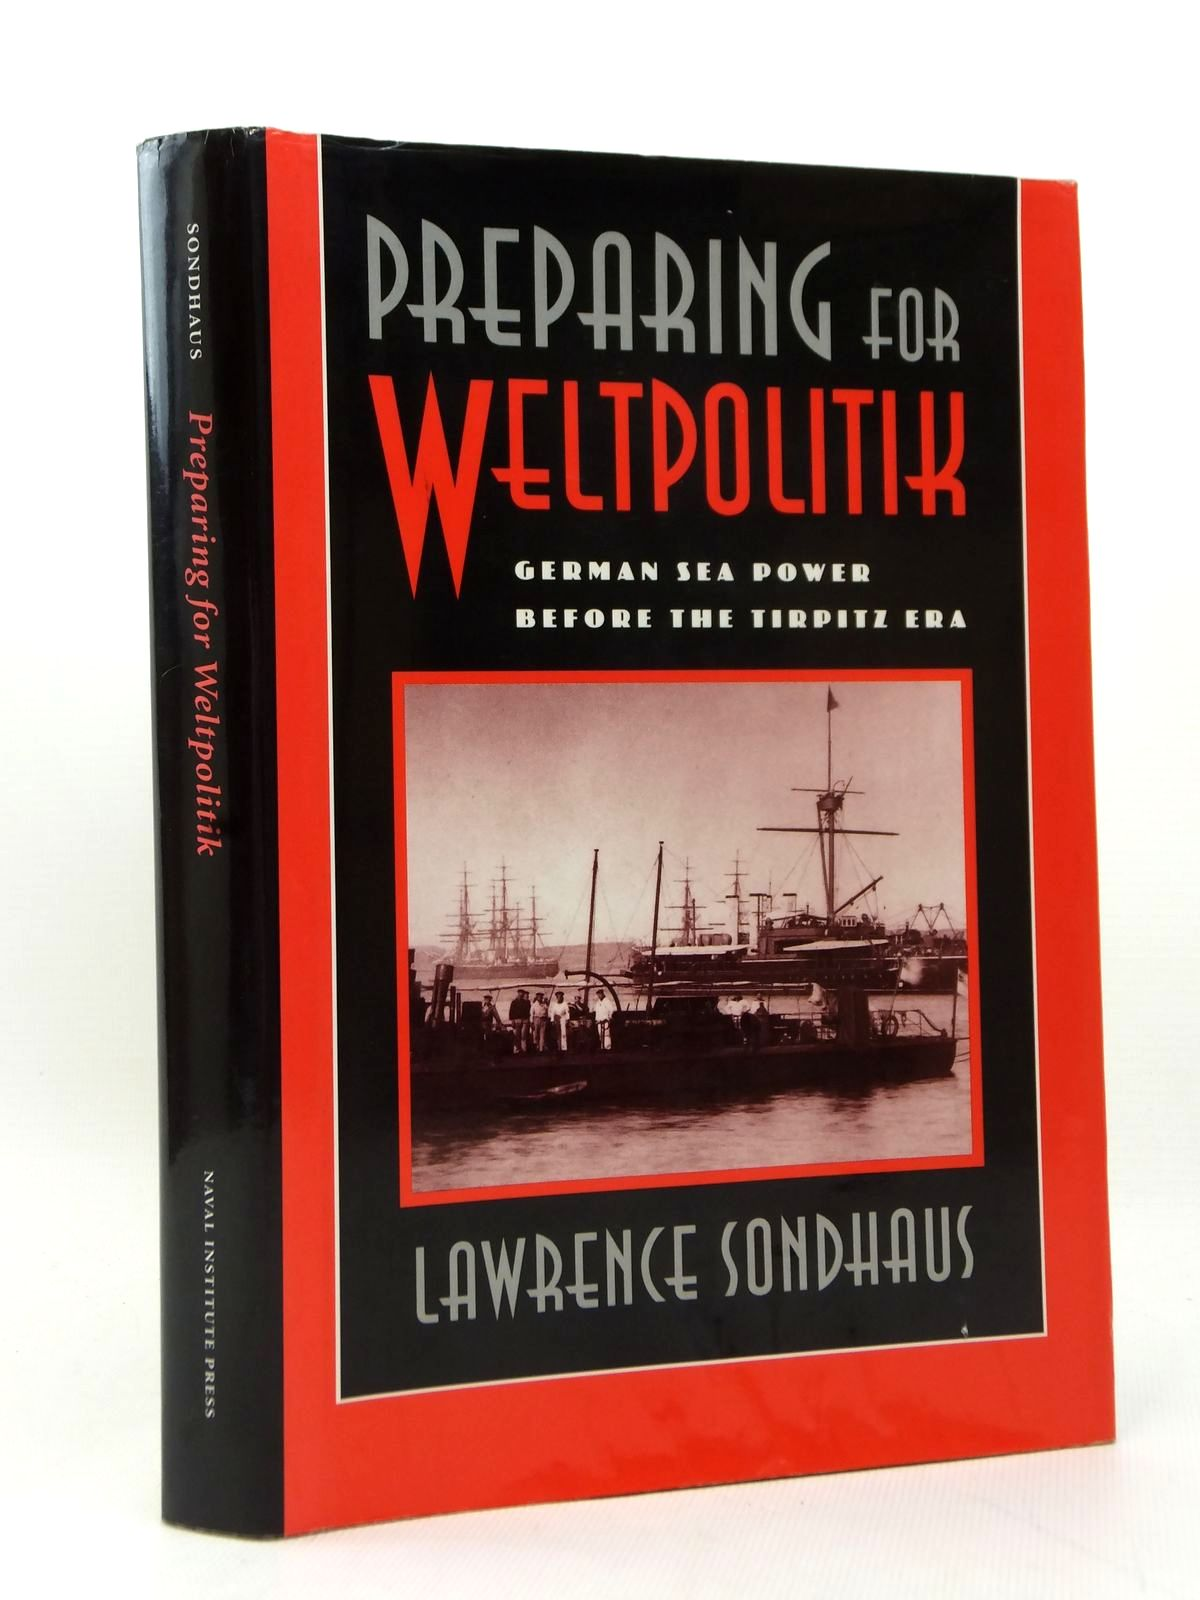 Photo of PREPARING FOR WELTPOLITIK GERMAN SEA POWER BEFORE THE TIRPITZ ERA written by Sondhaus, Lawrence published by Naval Institute Press (STOCK CODE: 2123222)  for sale by Stella & Rose's Books